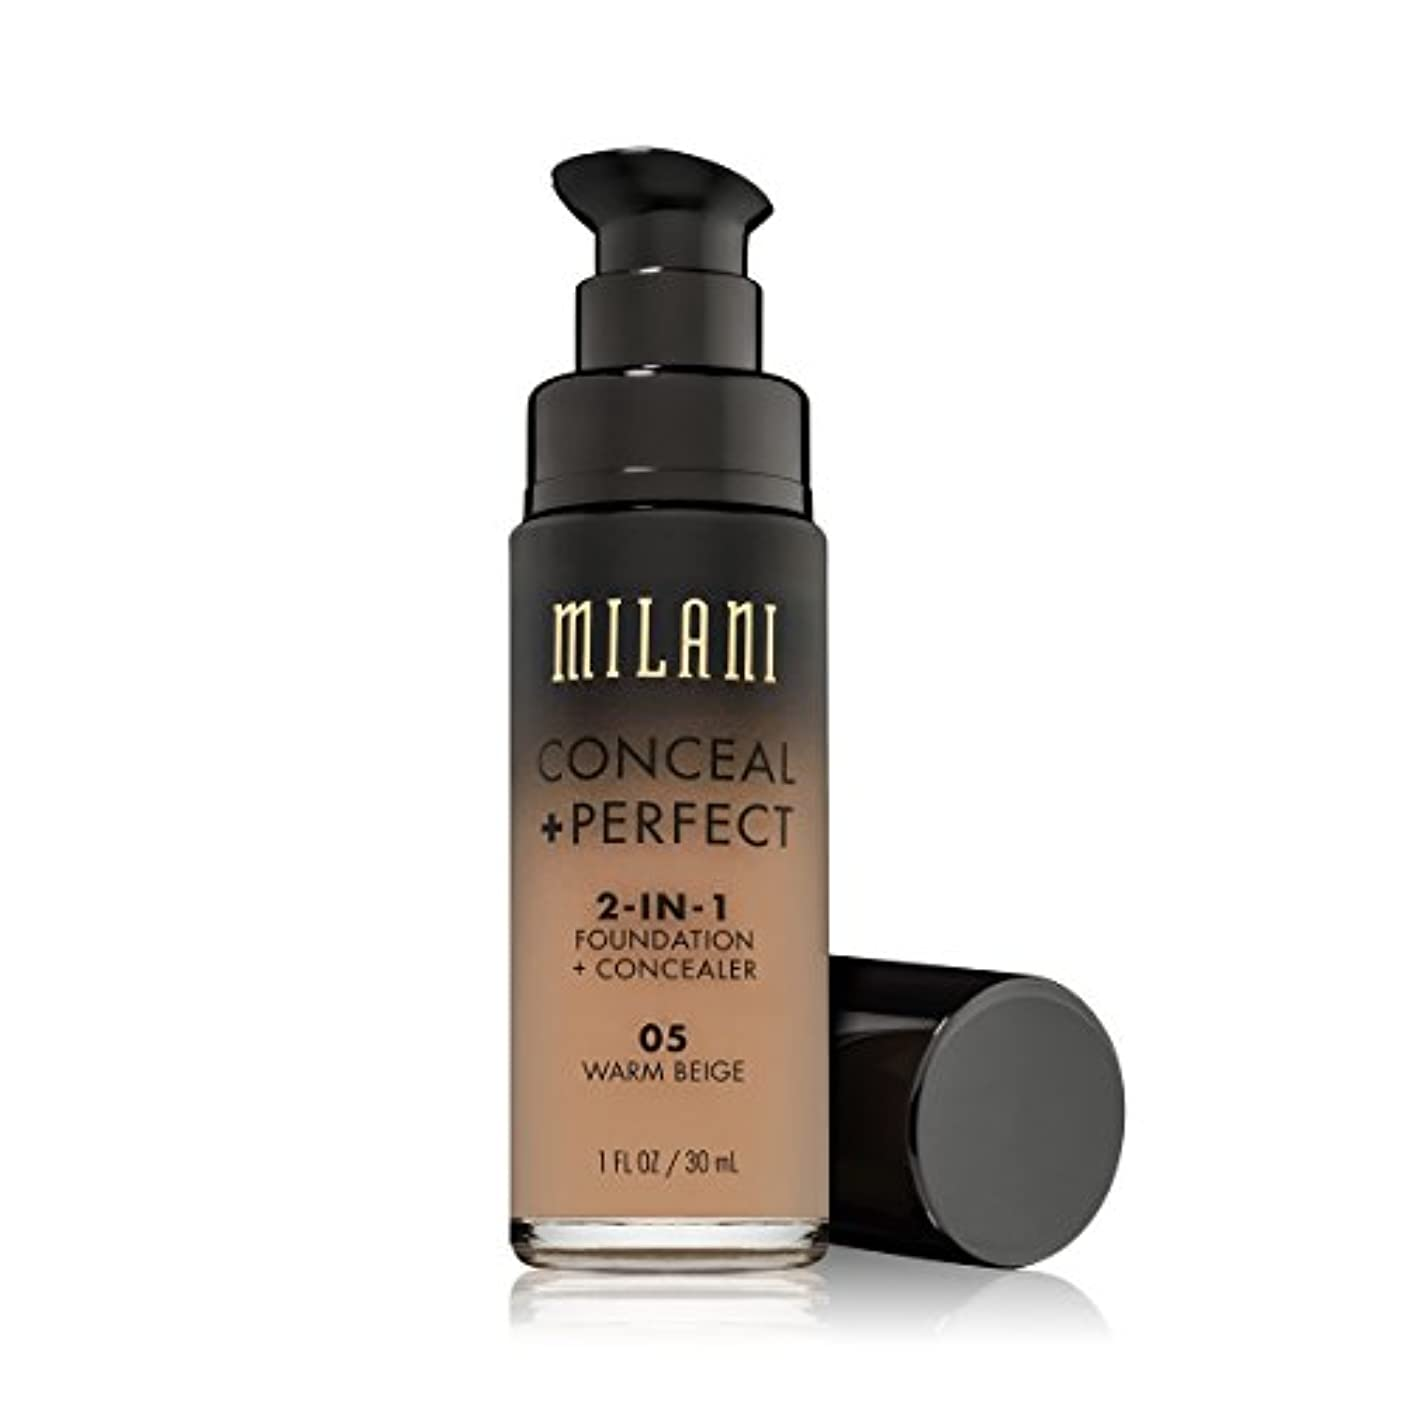 MILANI Conceal + Perfect 2-In-1 Foundation + Concealer - Warm Beige (並行輸入品)